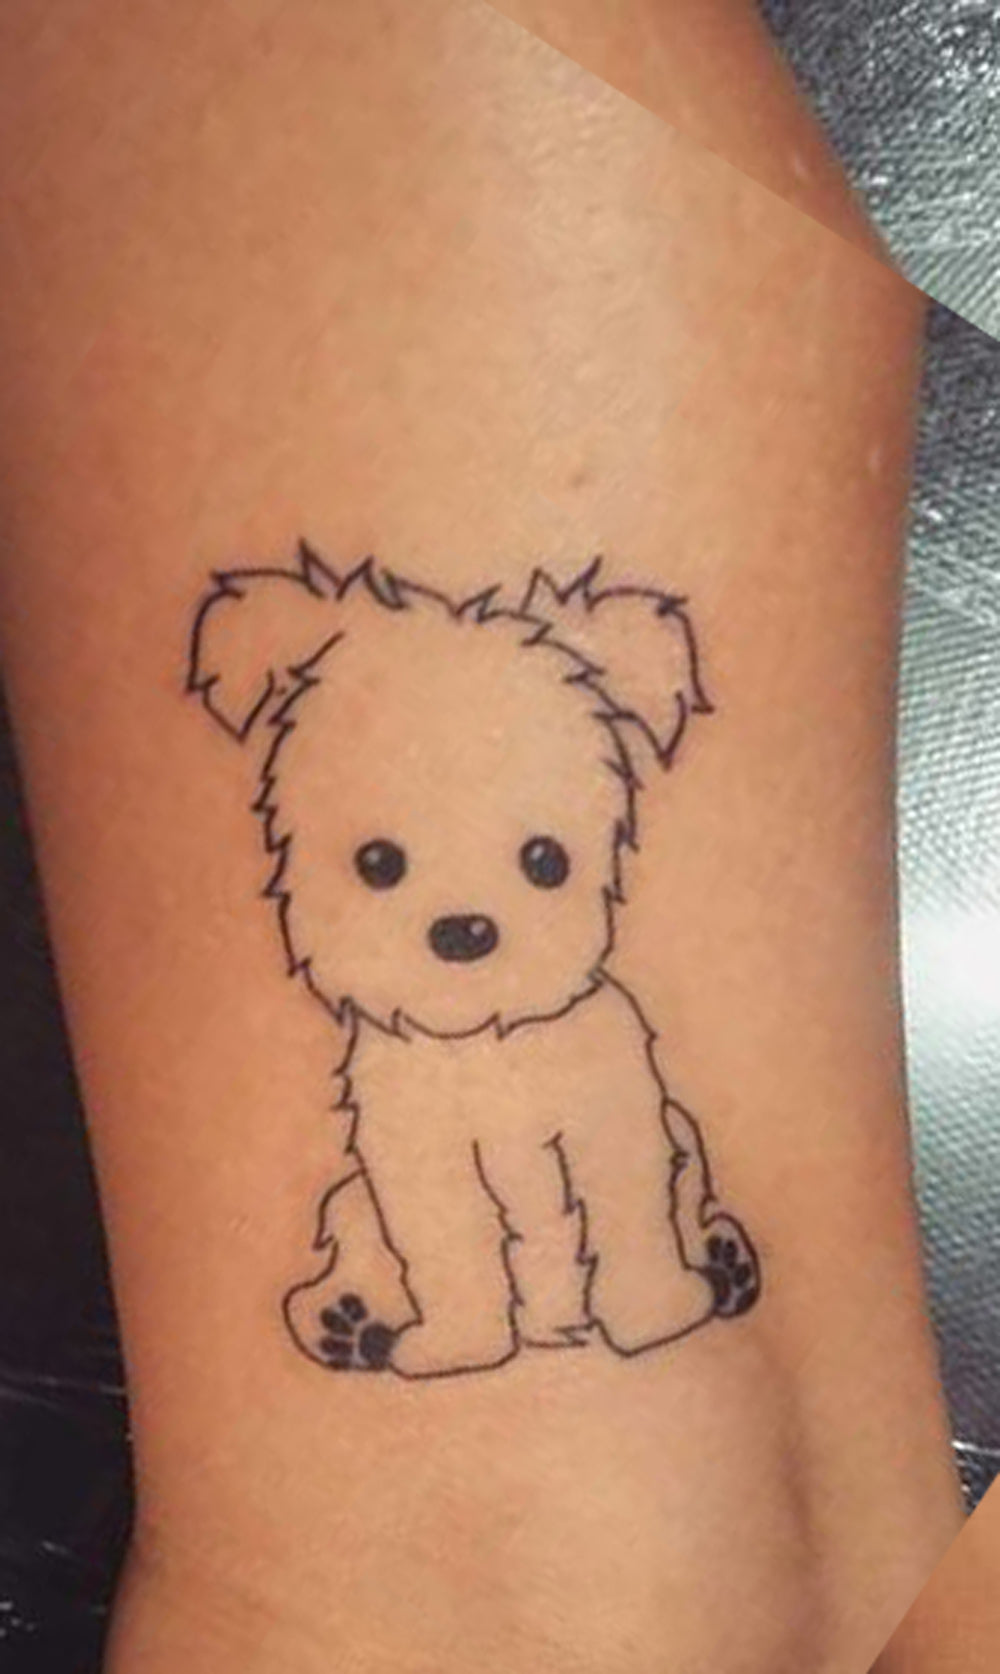 Image of: Elephant Cute Small Dog Tattoo Ideas Arm Sleeve For Women Ideas Lindas Del Tatuaje Del Perro Mybodiart 30 Cute Small Simple Dog Tattoo Ideas For Women Animal Lovers